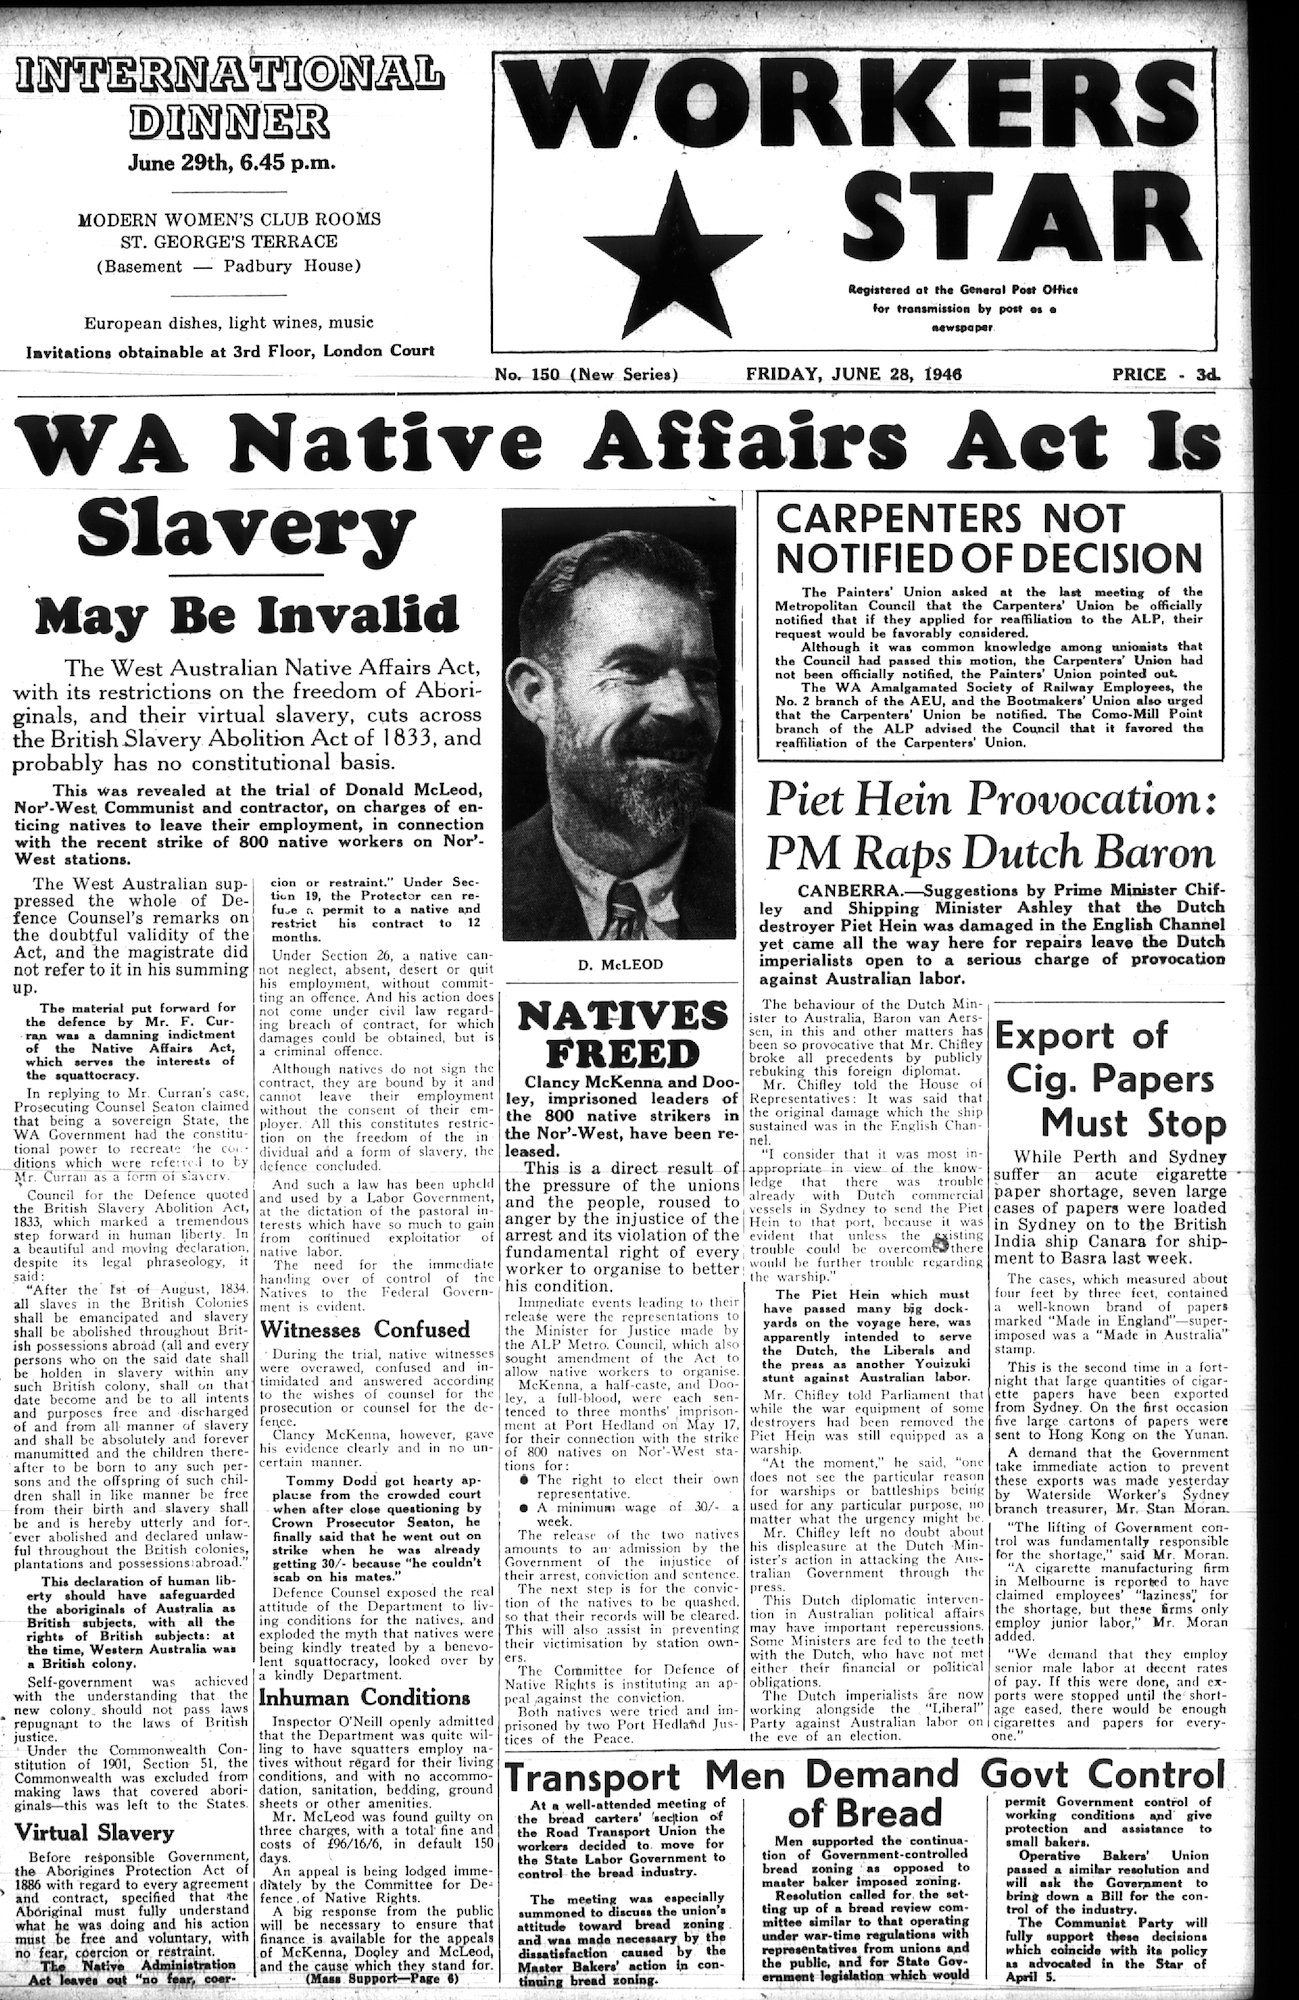 WA Native Affairs Act is Slavery newspaper article